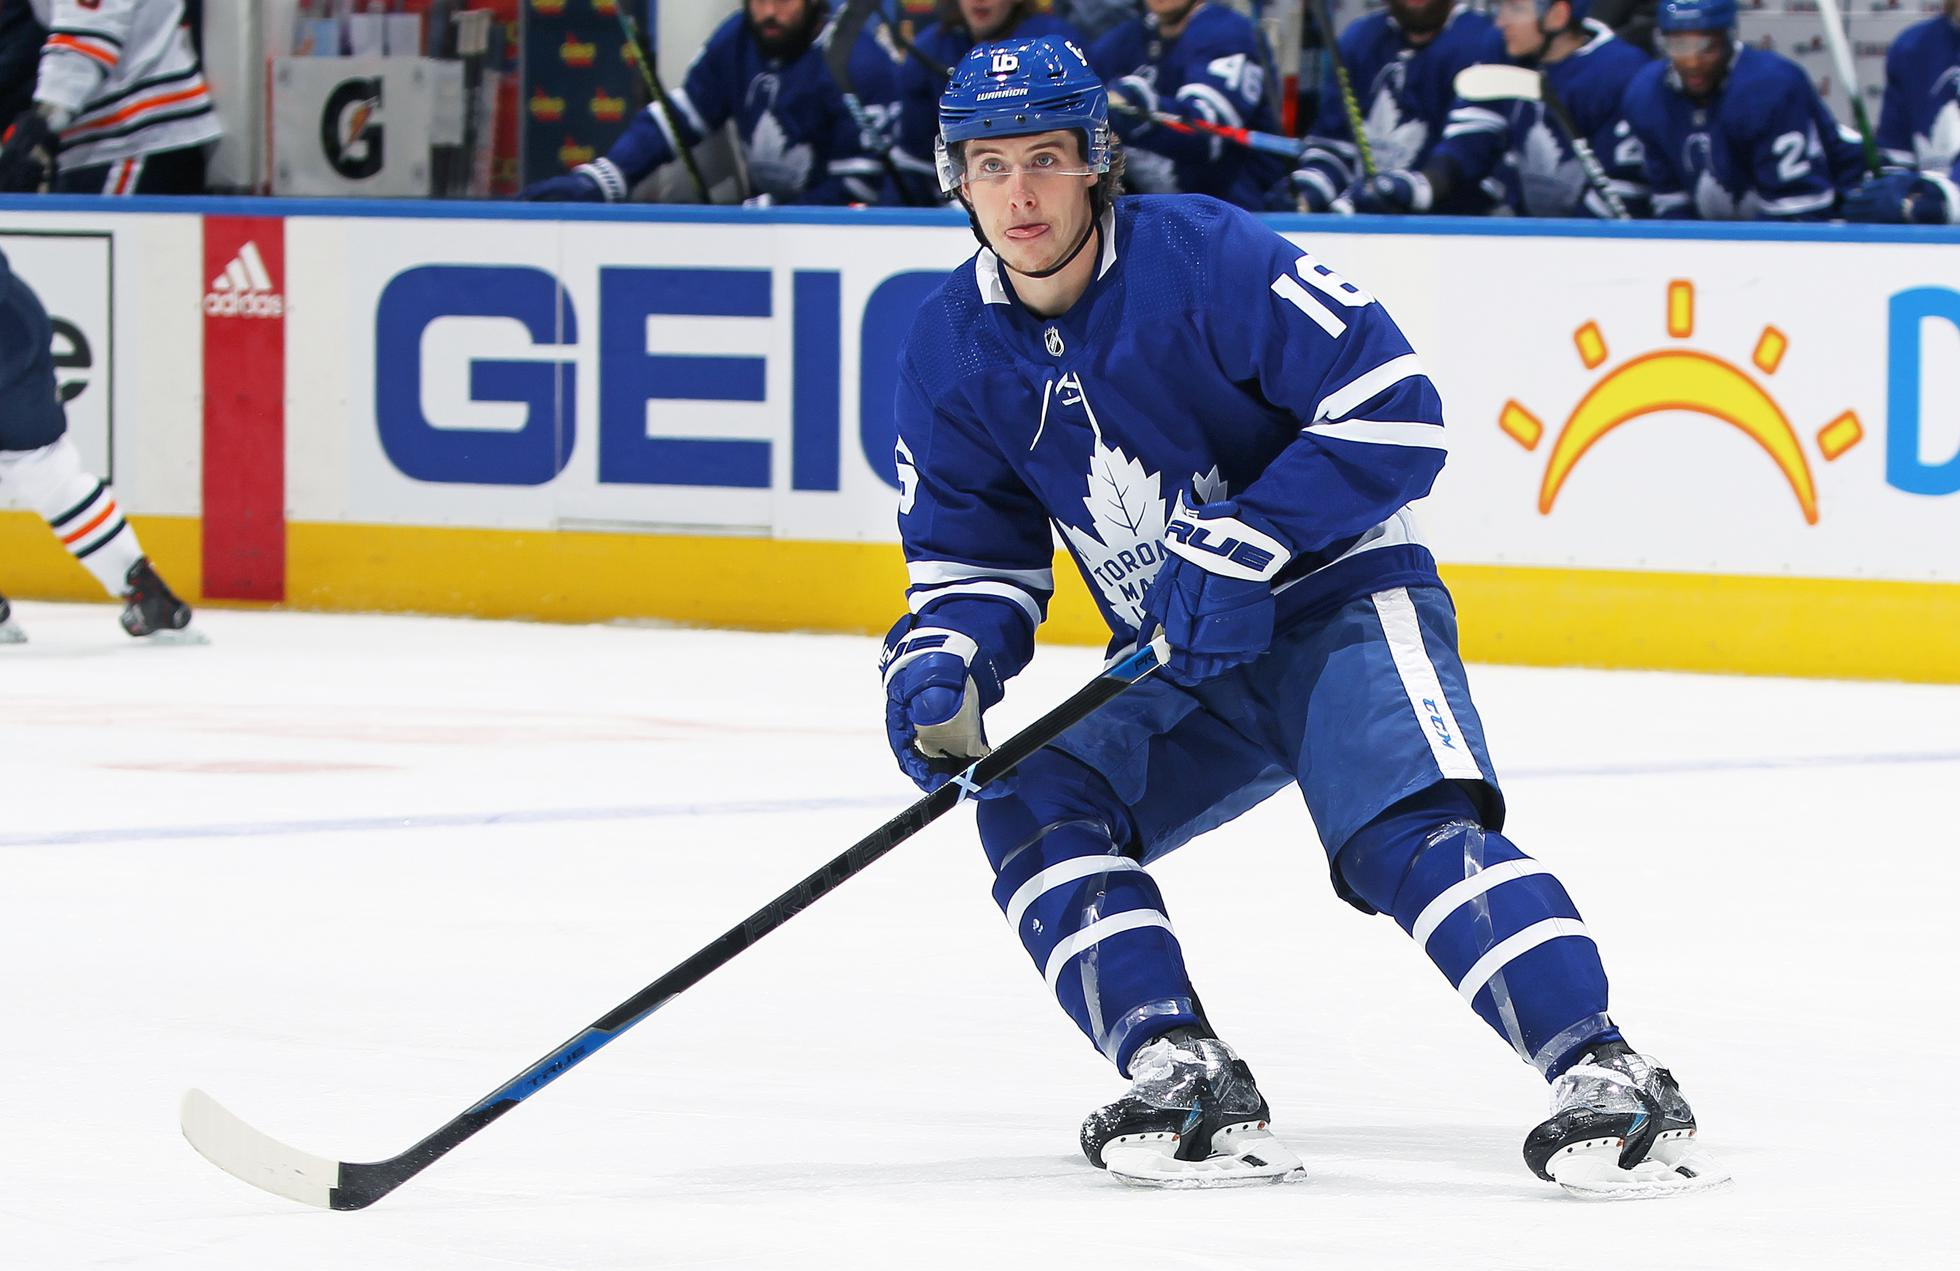 Mitchell Marner #16 of the Toronto Maple Leafs skates against the Edmonton Oilers during an NHL game at Scotiabank Arena on January 20, 2021 in Toronto, Ontario, Canada. The Oilers defeated the Maple Leafs 3-1.